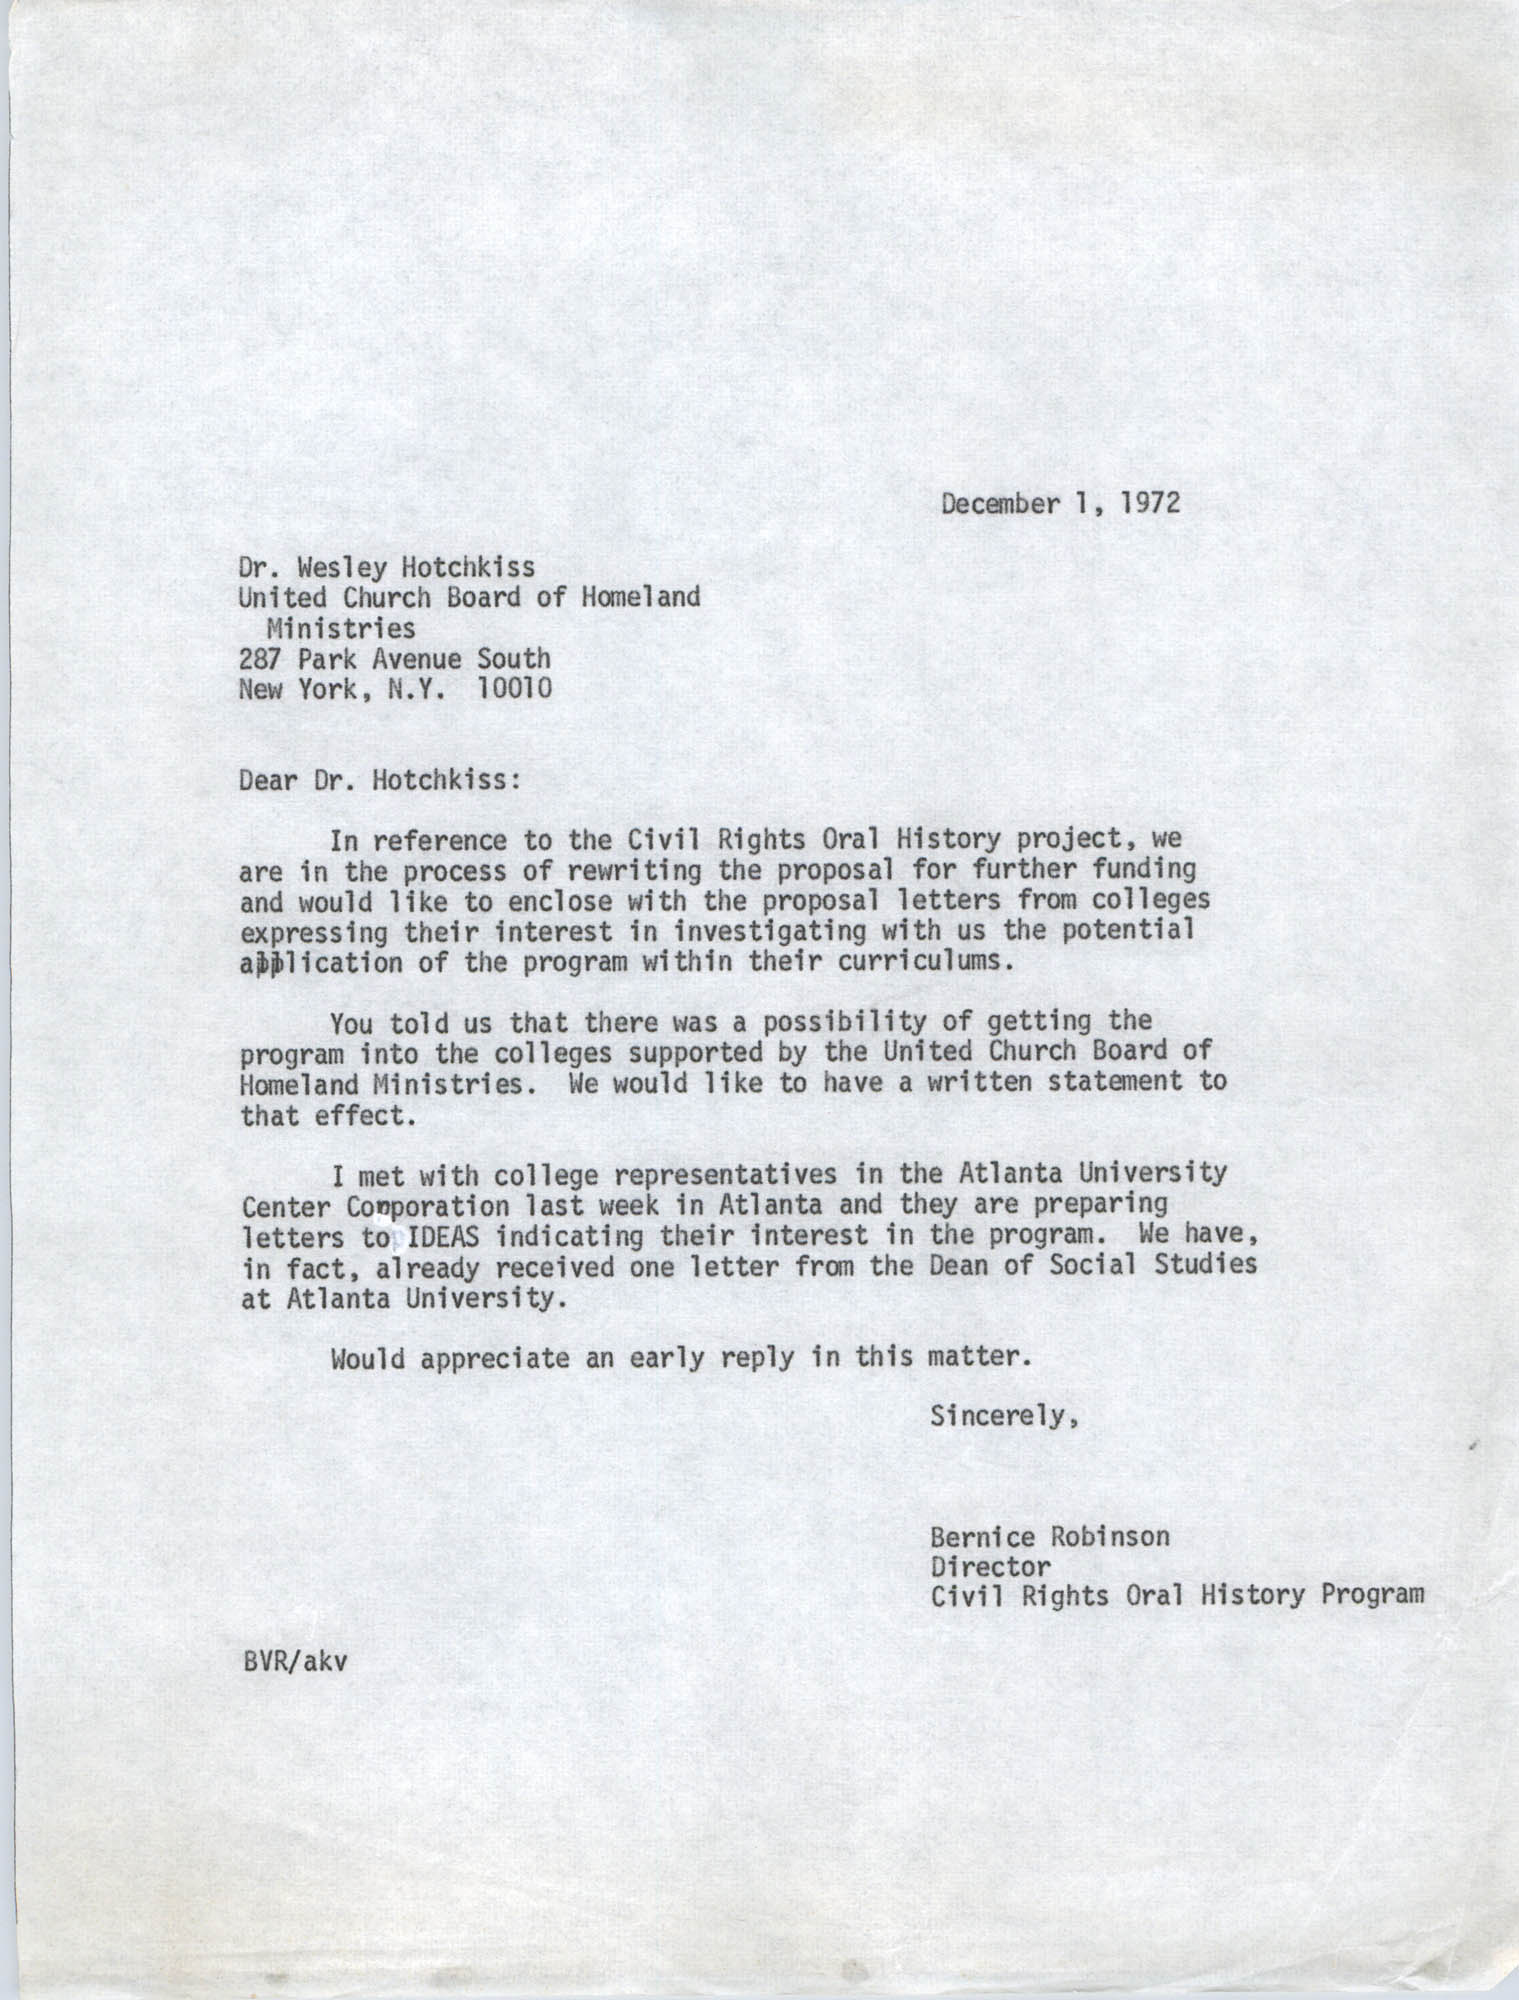 Letter from Bernice Robinson to Wesley Hotchkiss, December 1, 1972